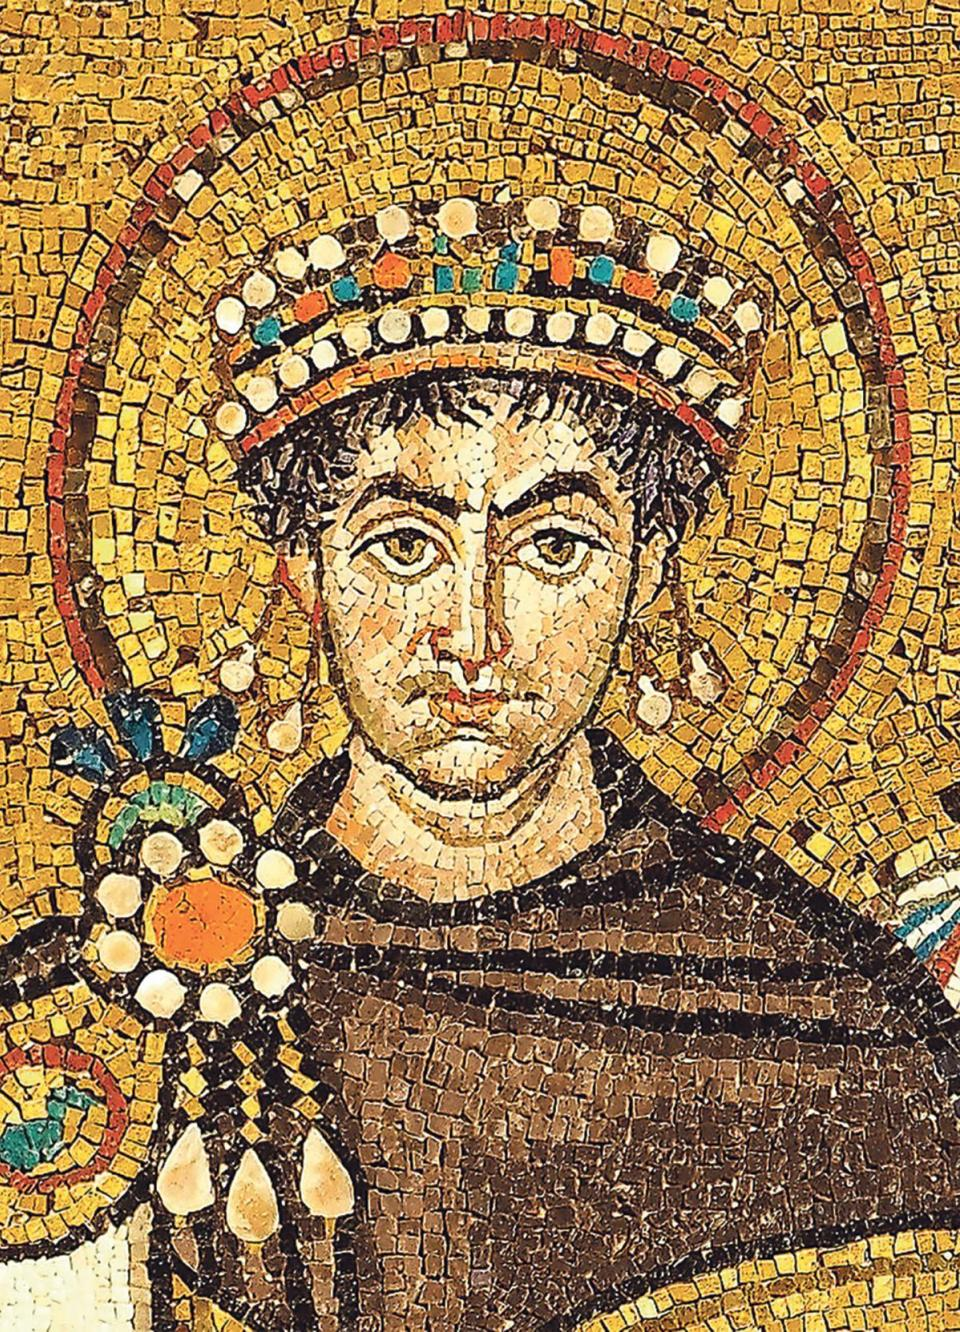 The Byzantine Emperor Justinian, who tried to re-conquer the Roman Western Empire. Malta became part of the Byzantine Empire during his reign. (From a mosaic in Ravenna, Italy)